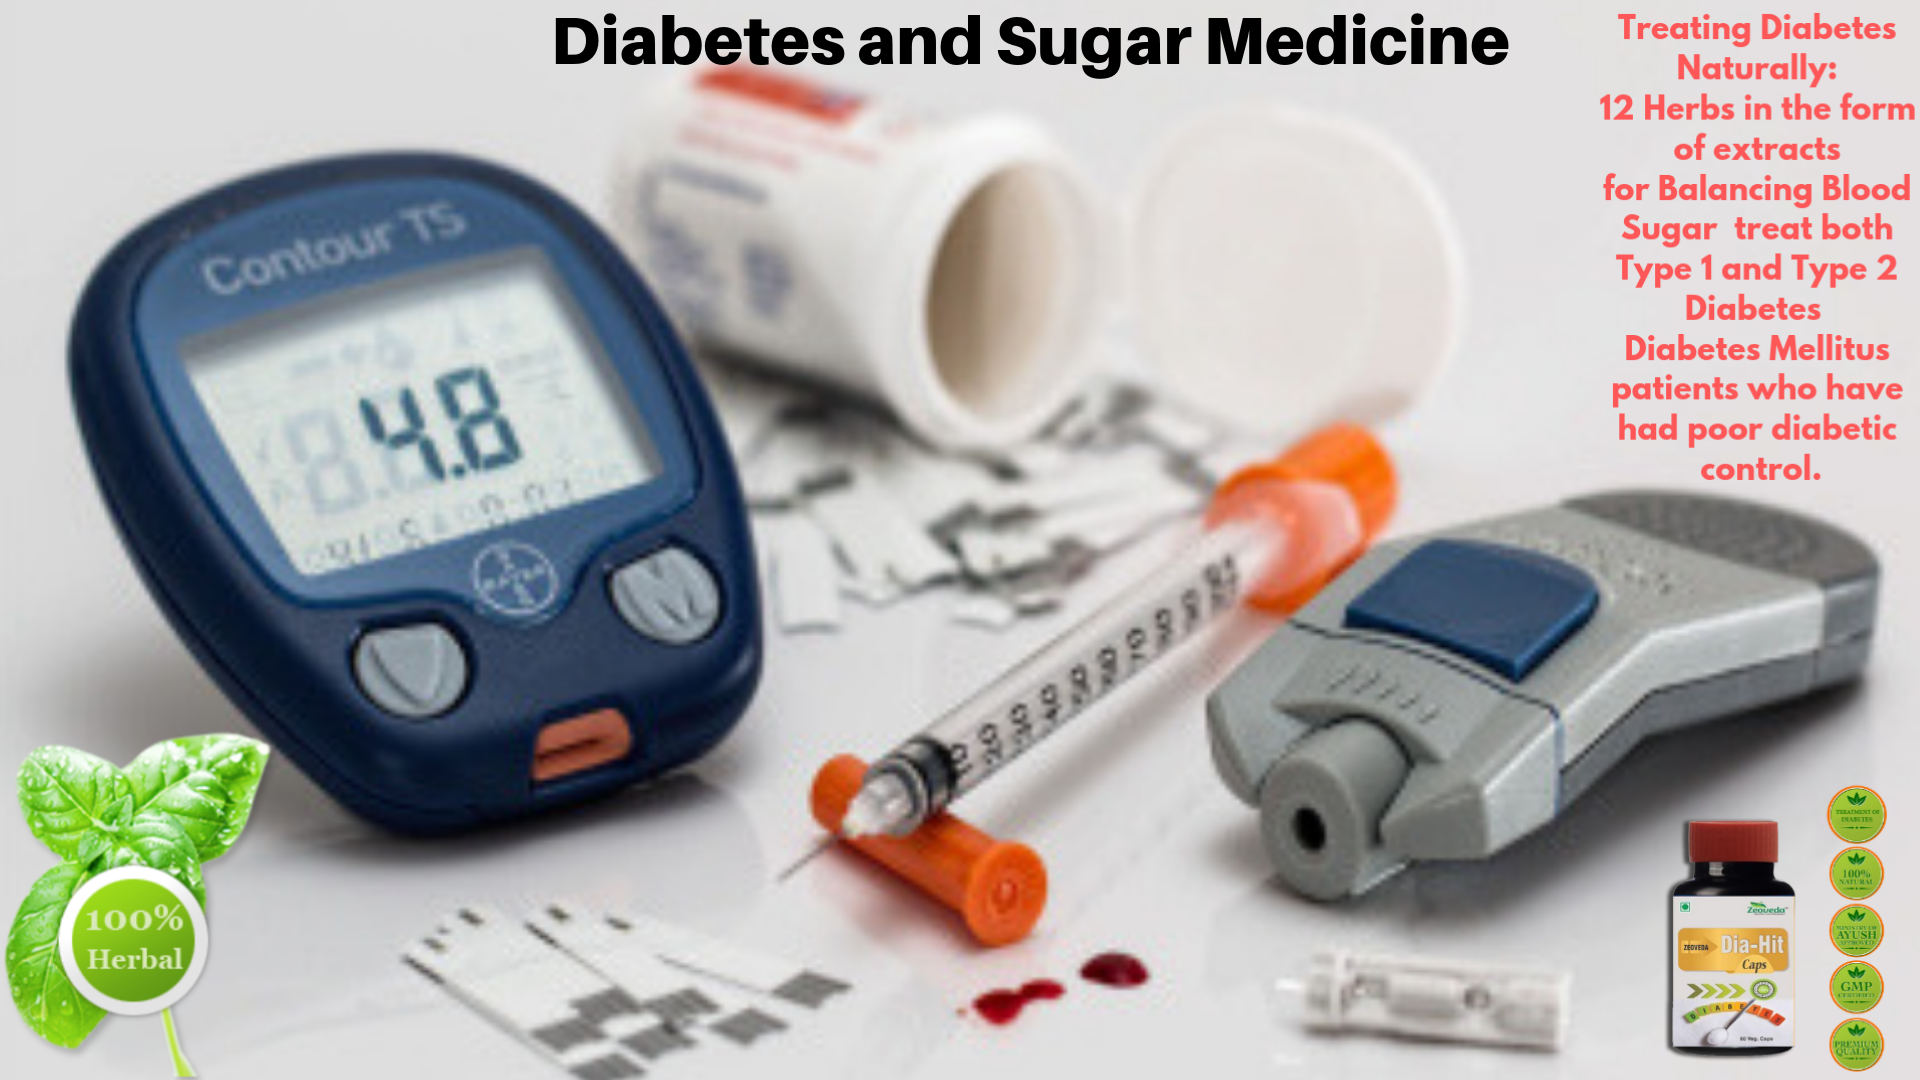 Diabetes and Sugar Medicine